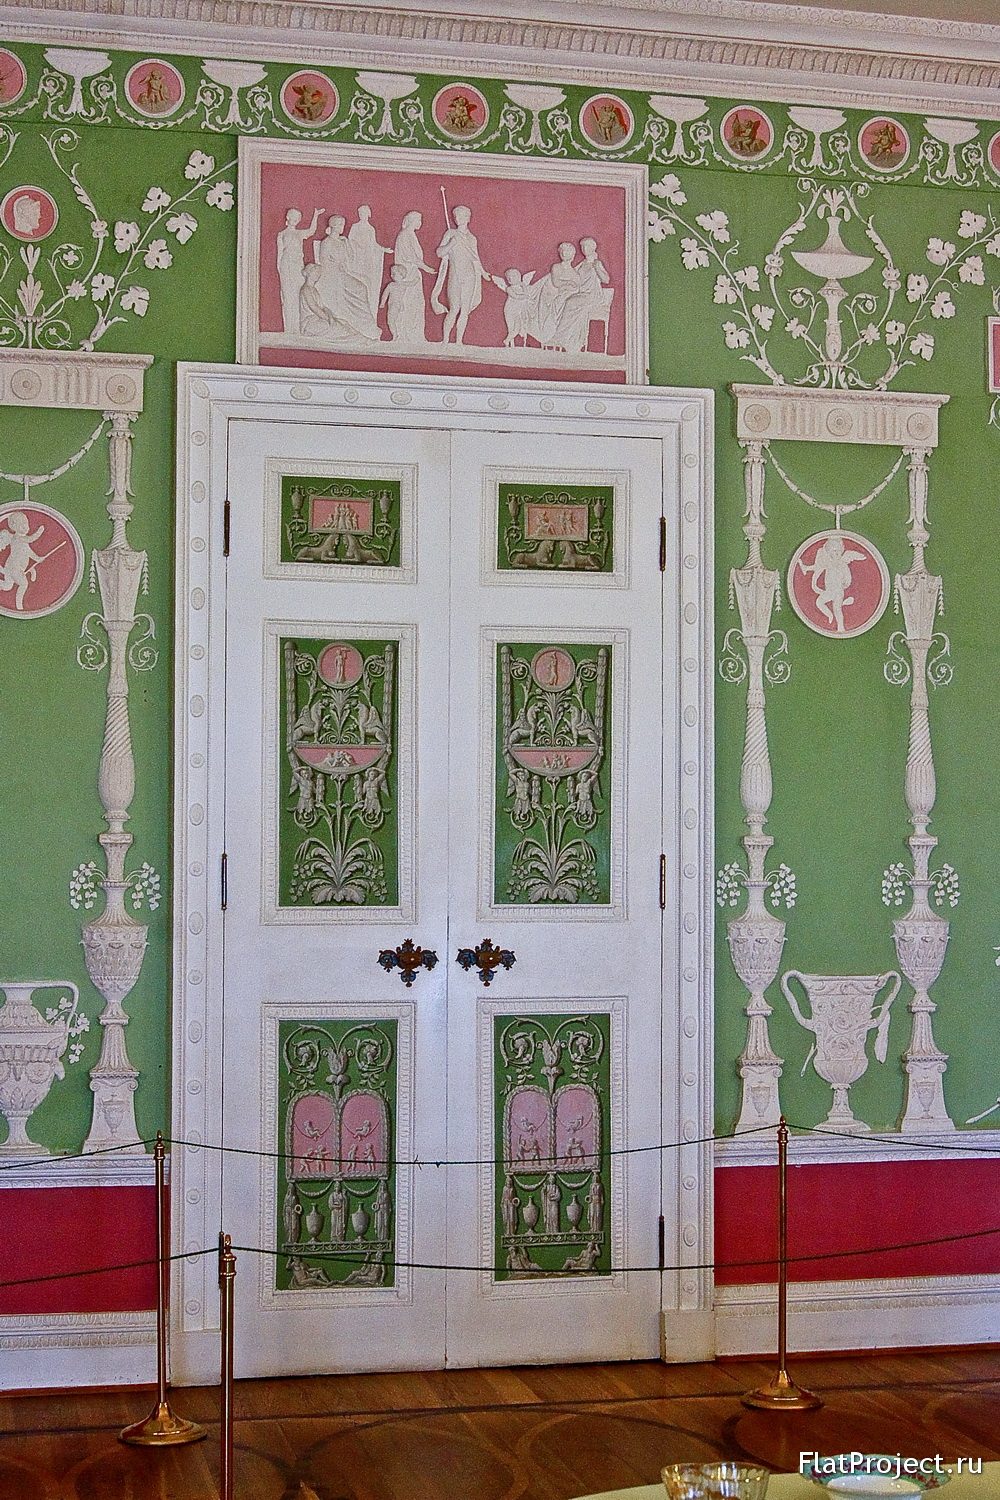 The Catherine Palace interiors – photo 91